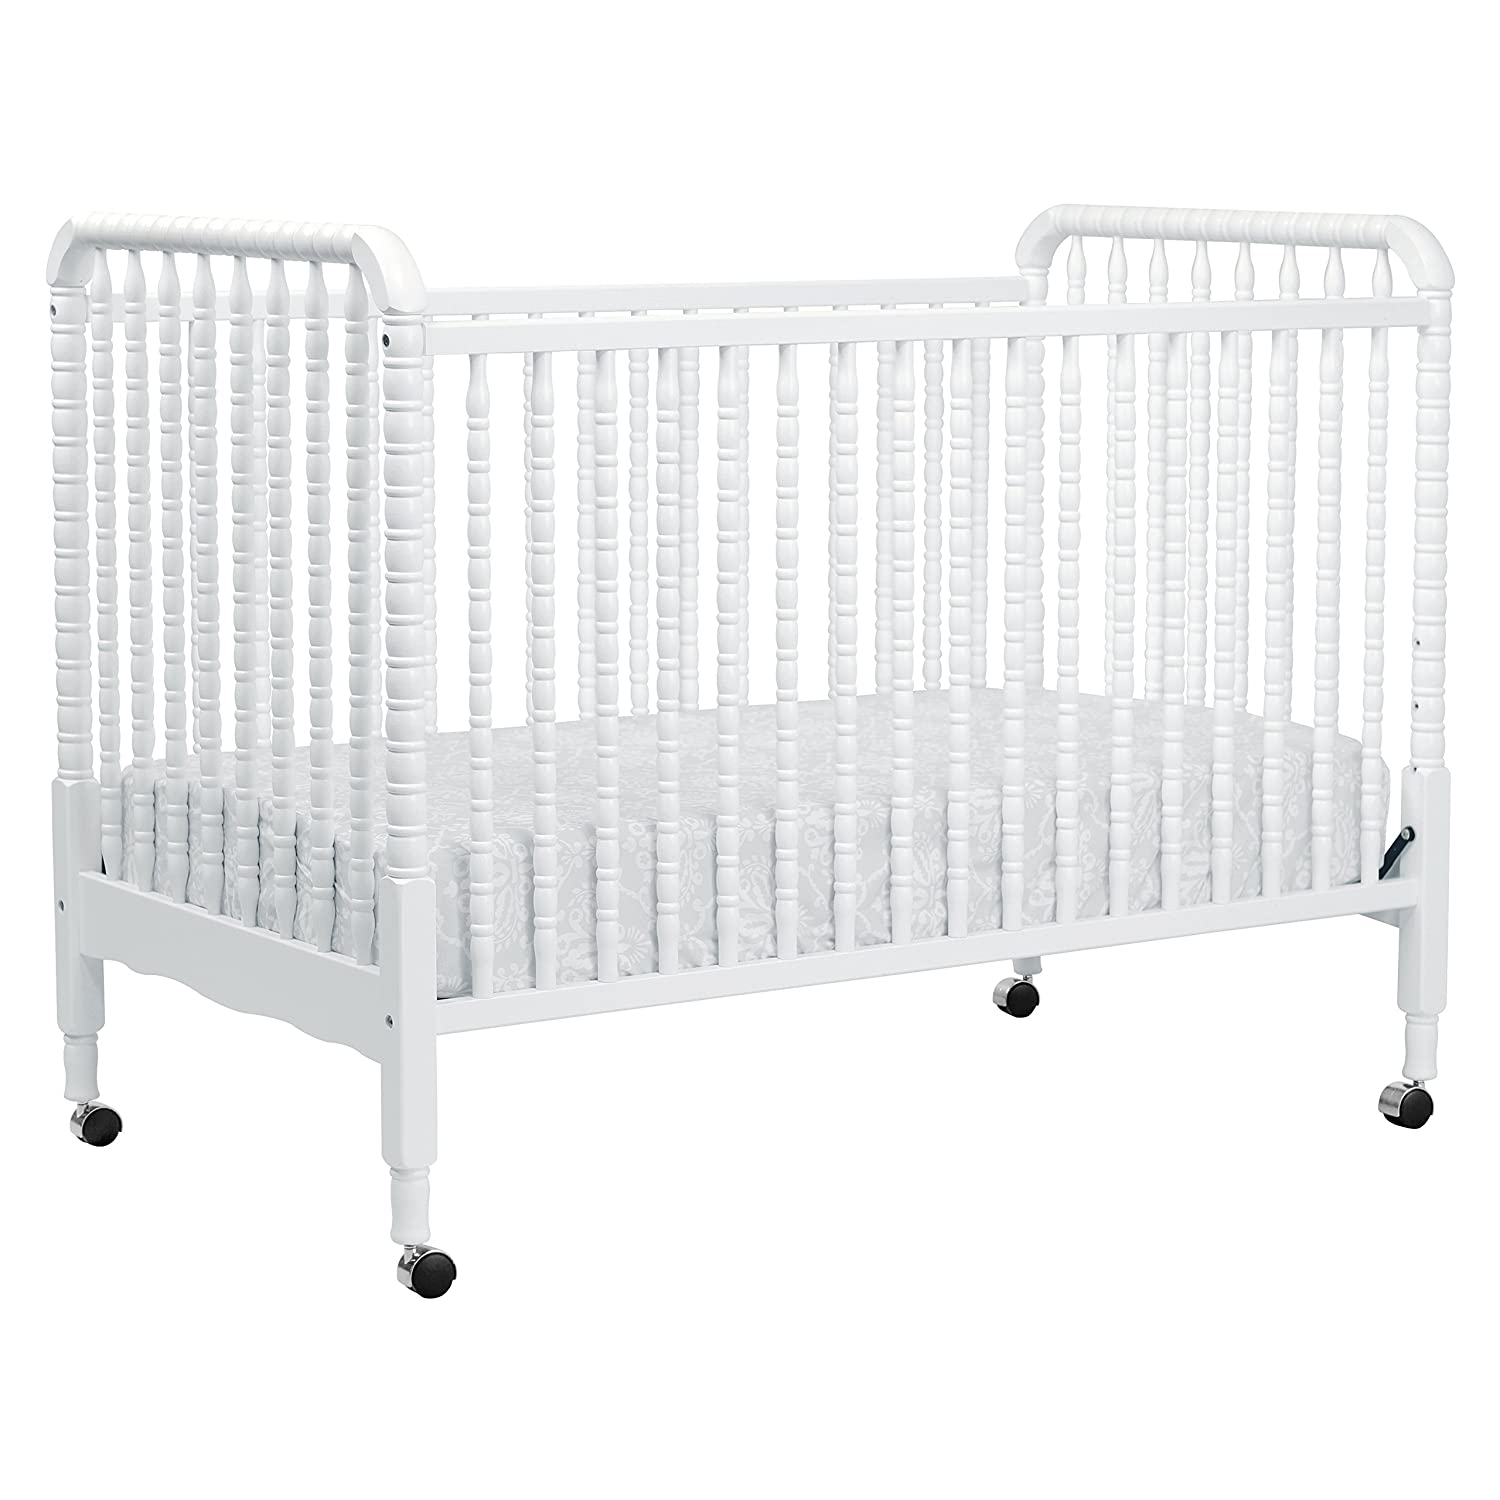 Contemporary white wooden jenny lind crib for your baby to sleep - Contemporary White Wooden Jenny Lind Crib For Your Baby To Sleep 43